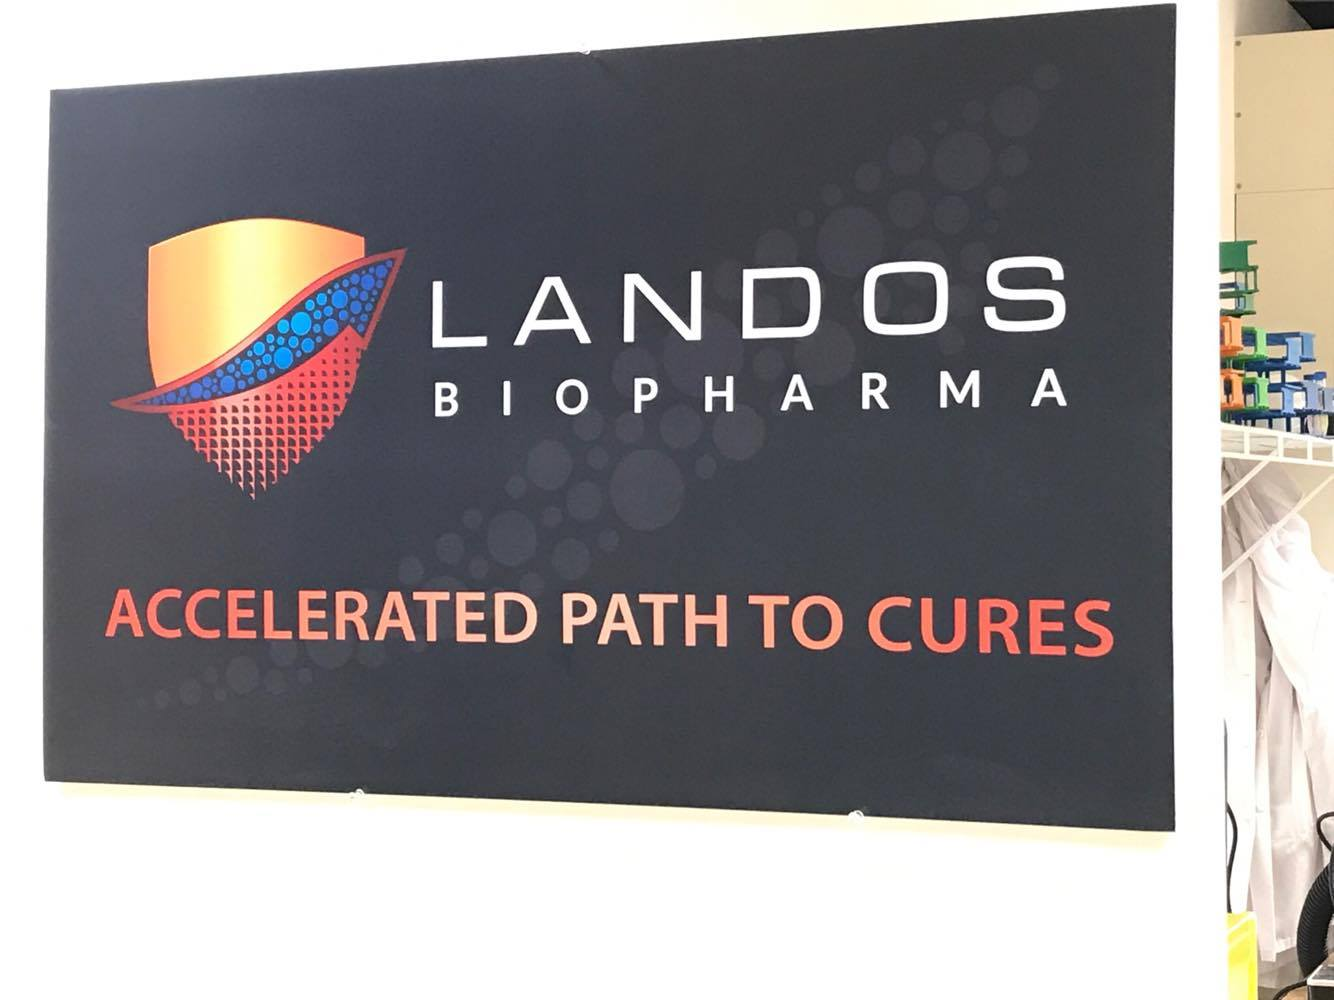 Blacksburg's Landos Biopharma is working on a new treatment for Crohn's Disease and ulcerative colitis. (Photo: Annie Andersen)<p></p>